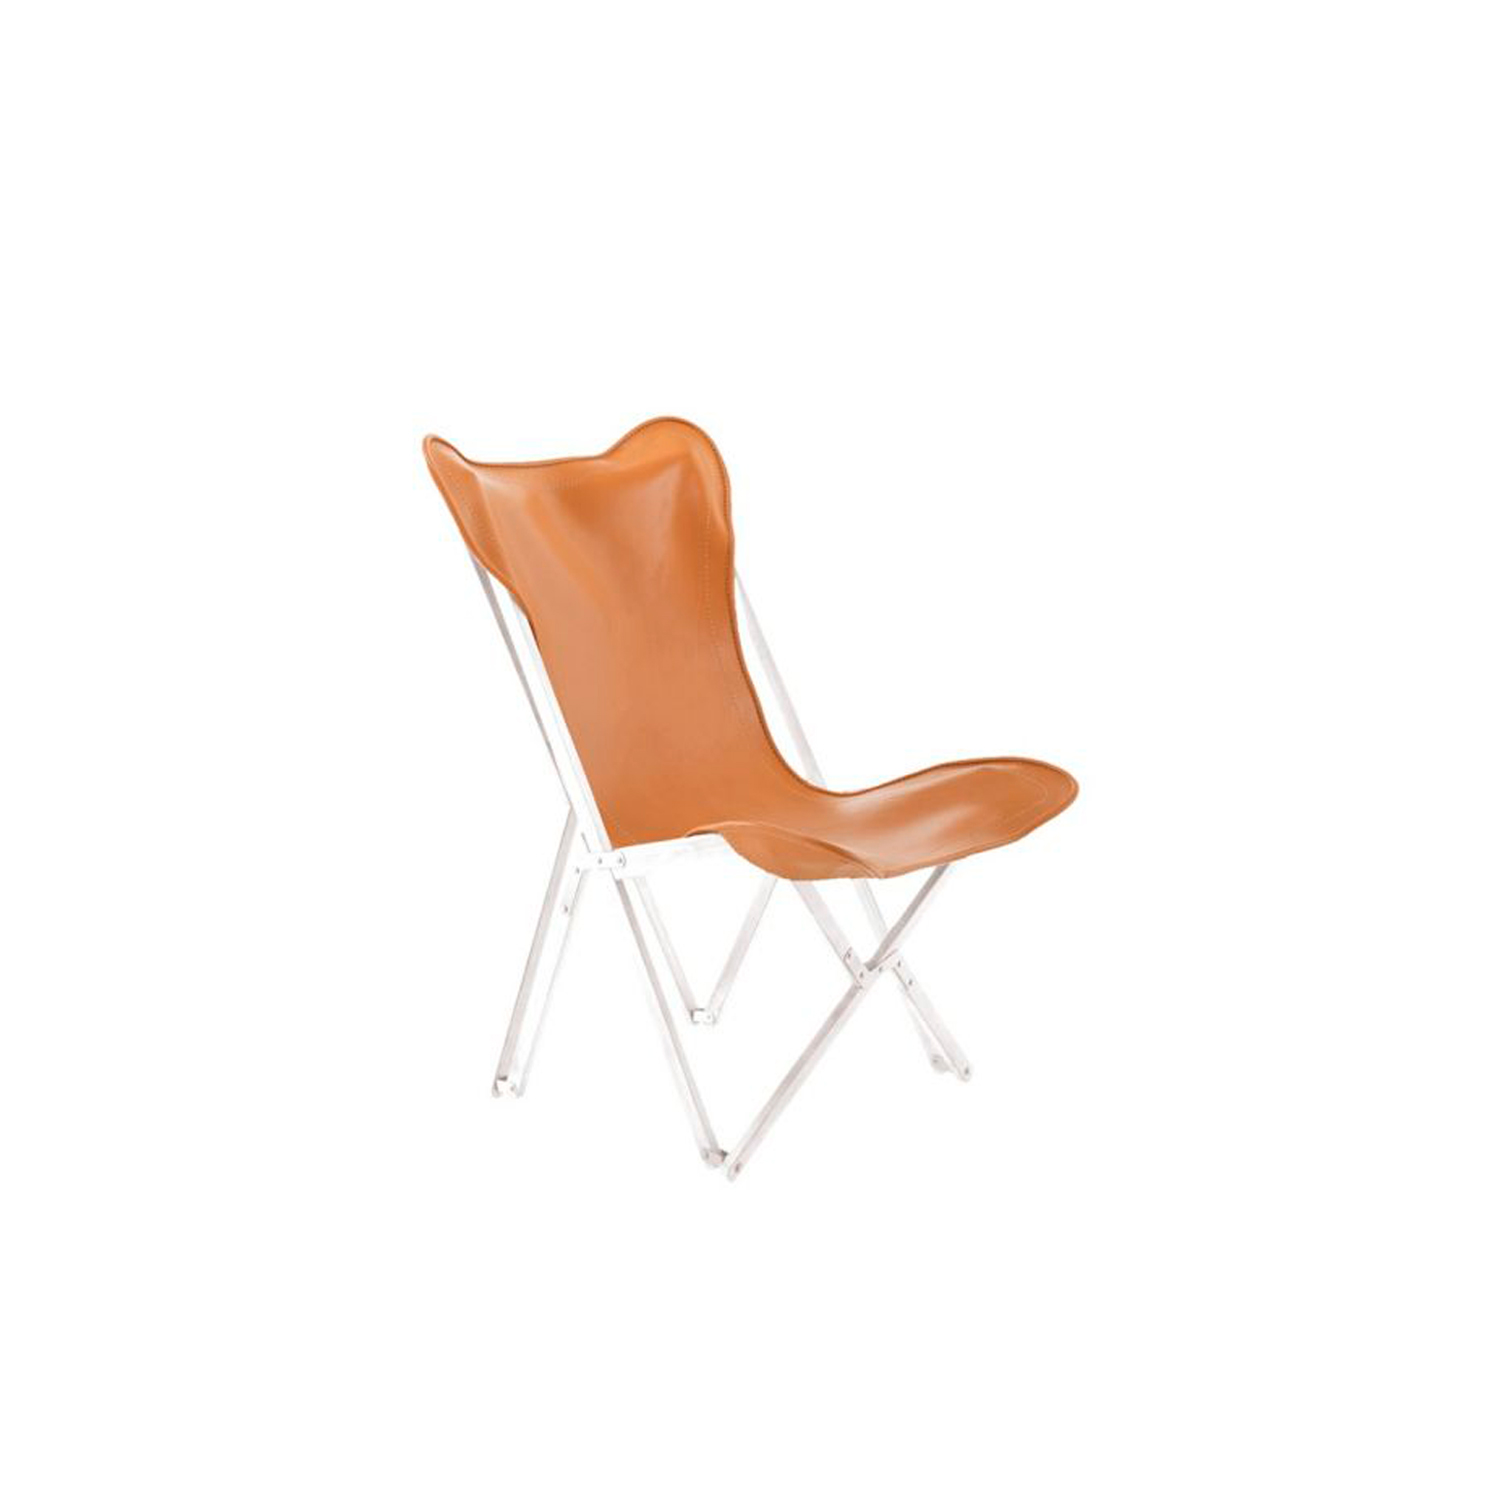 """Emy Leather Chair  - Emy chair in leather. Available in Natural Tan, Orange or Green colour.   The inspiration came from the so-called """"Tripolina"""", created in the 19th century but reproduced by Italians in Libya in the 30s for camp life in the desert. The distinctive features of the Emy small armchair are its classic style and strong personality.  Emy leather armchairs are unique, exclusive and refined products for elegant interior design furnishing.     Matter of Stuff"""